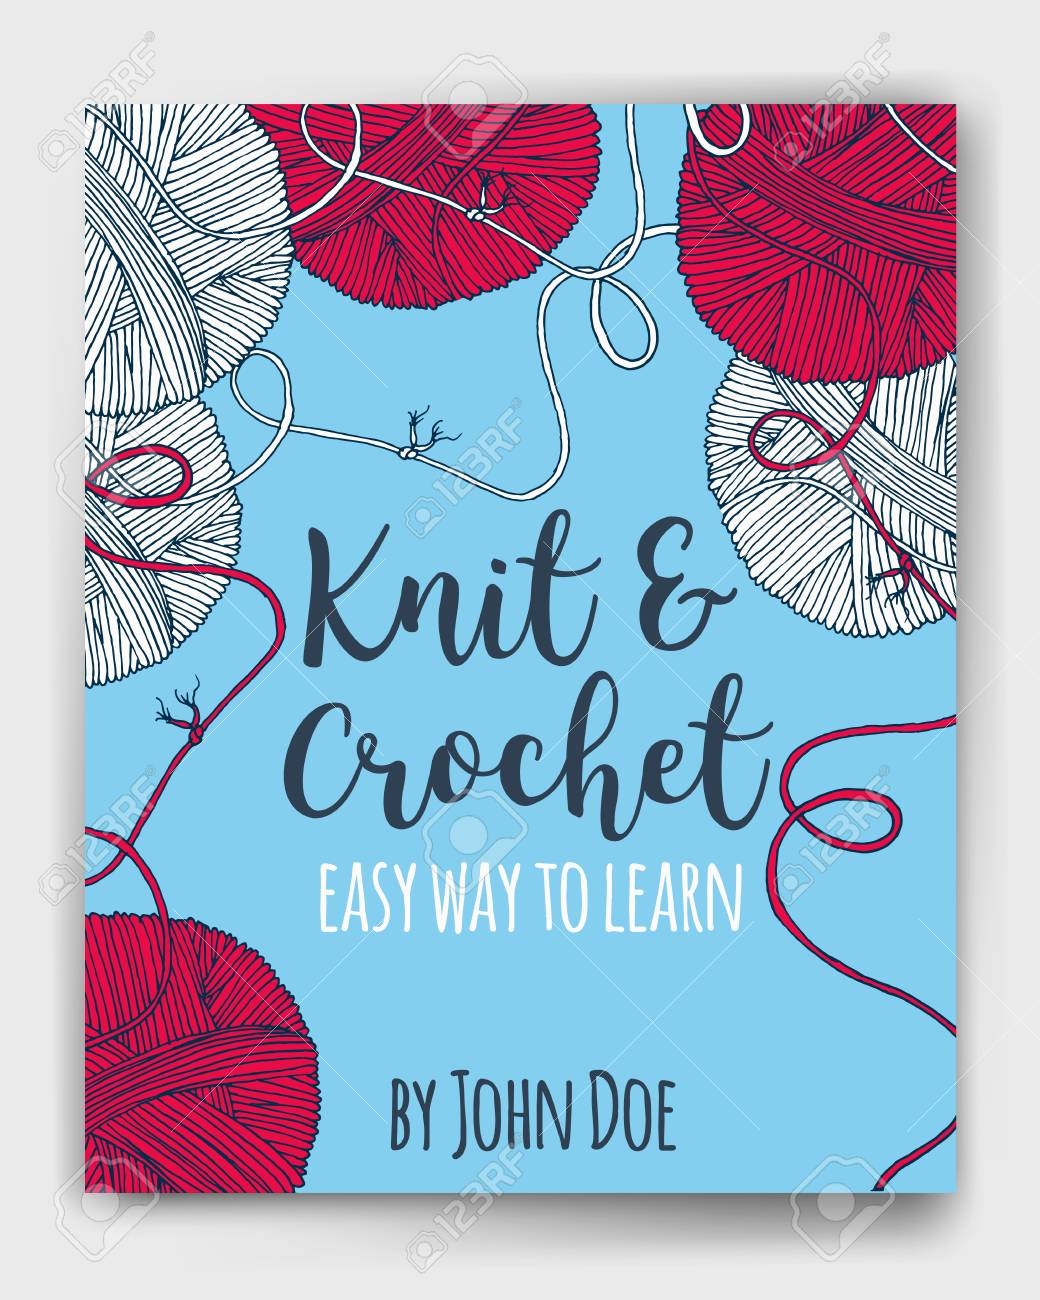 Book Cover Knitting Pattern ~ Vector yarn balls book cover mock up for knit and crochet classes